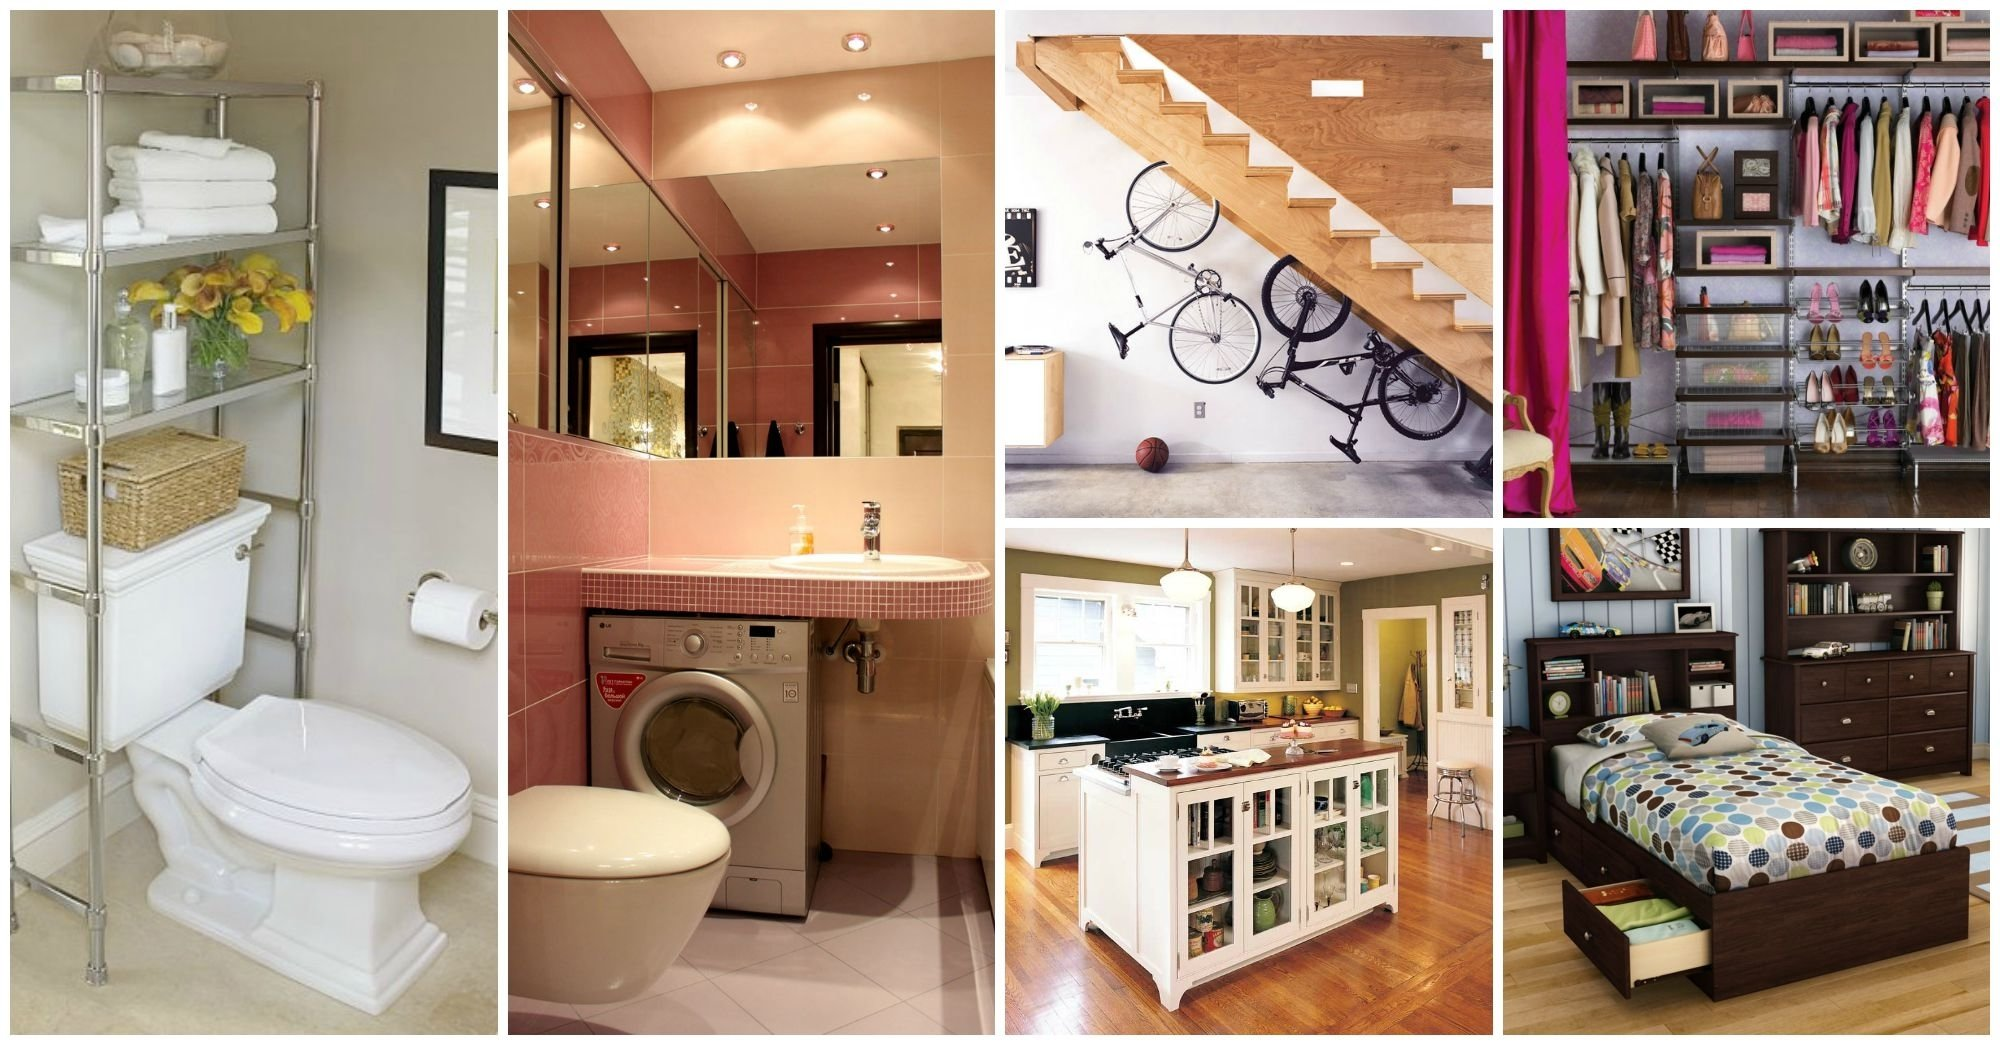 10 Perfect Space Saving Ideas For Small Homes 16 small home space saving tips houz buzz 2020